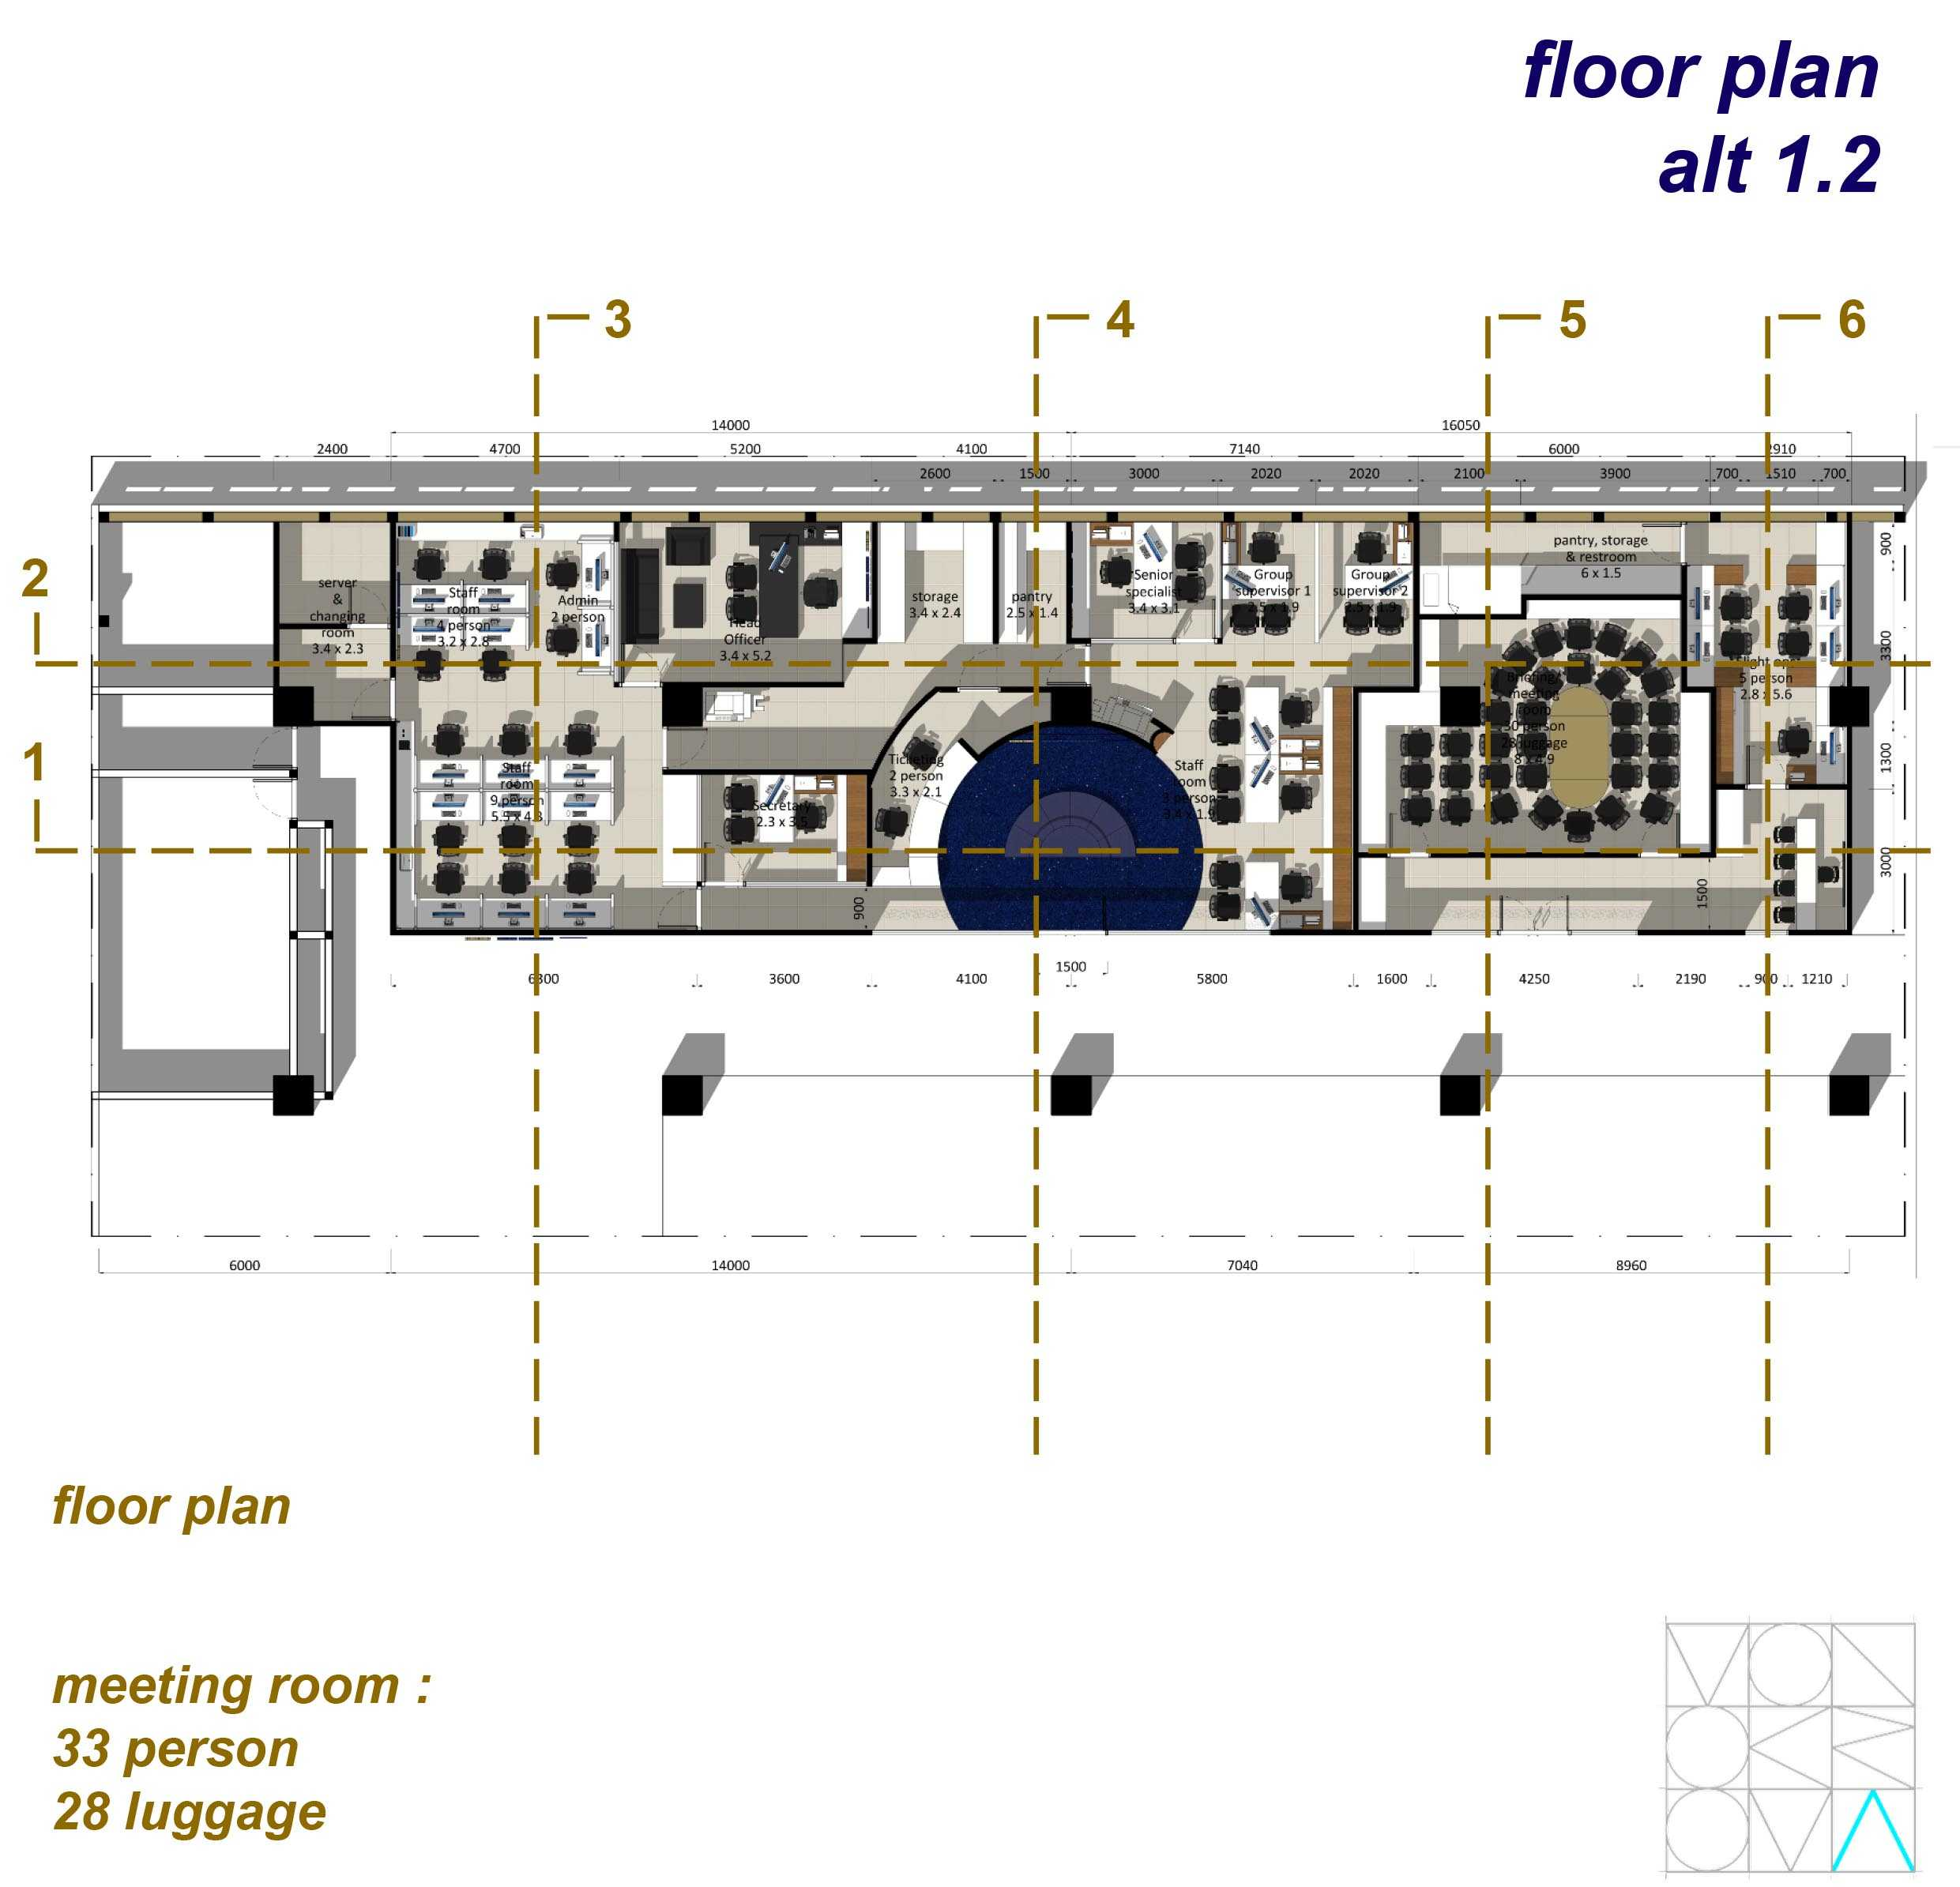 Monokroma Architect Saudi Arabian Airlines Office Soekarno Hatta Airport Terminal 3 Soekarno Hatta Airport Terminal 3 5-Floor-Plan-Alternative-1-2 Modern  14742